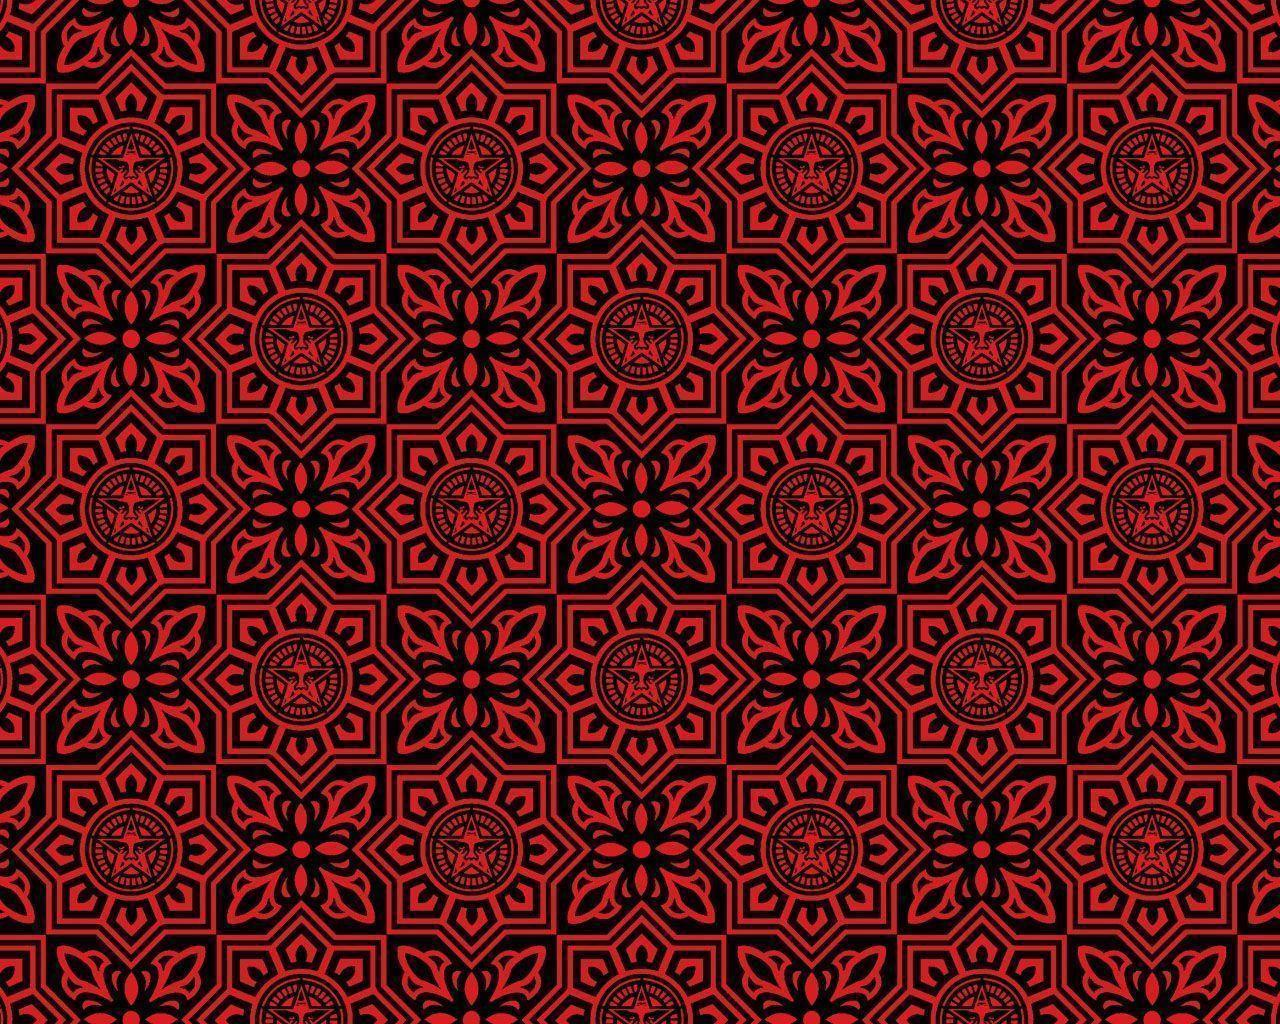 Obey Wallpaper Iphone Obey Wallpapers Wallpaper Cave